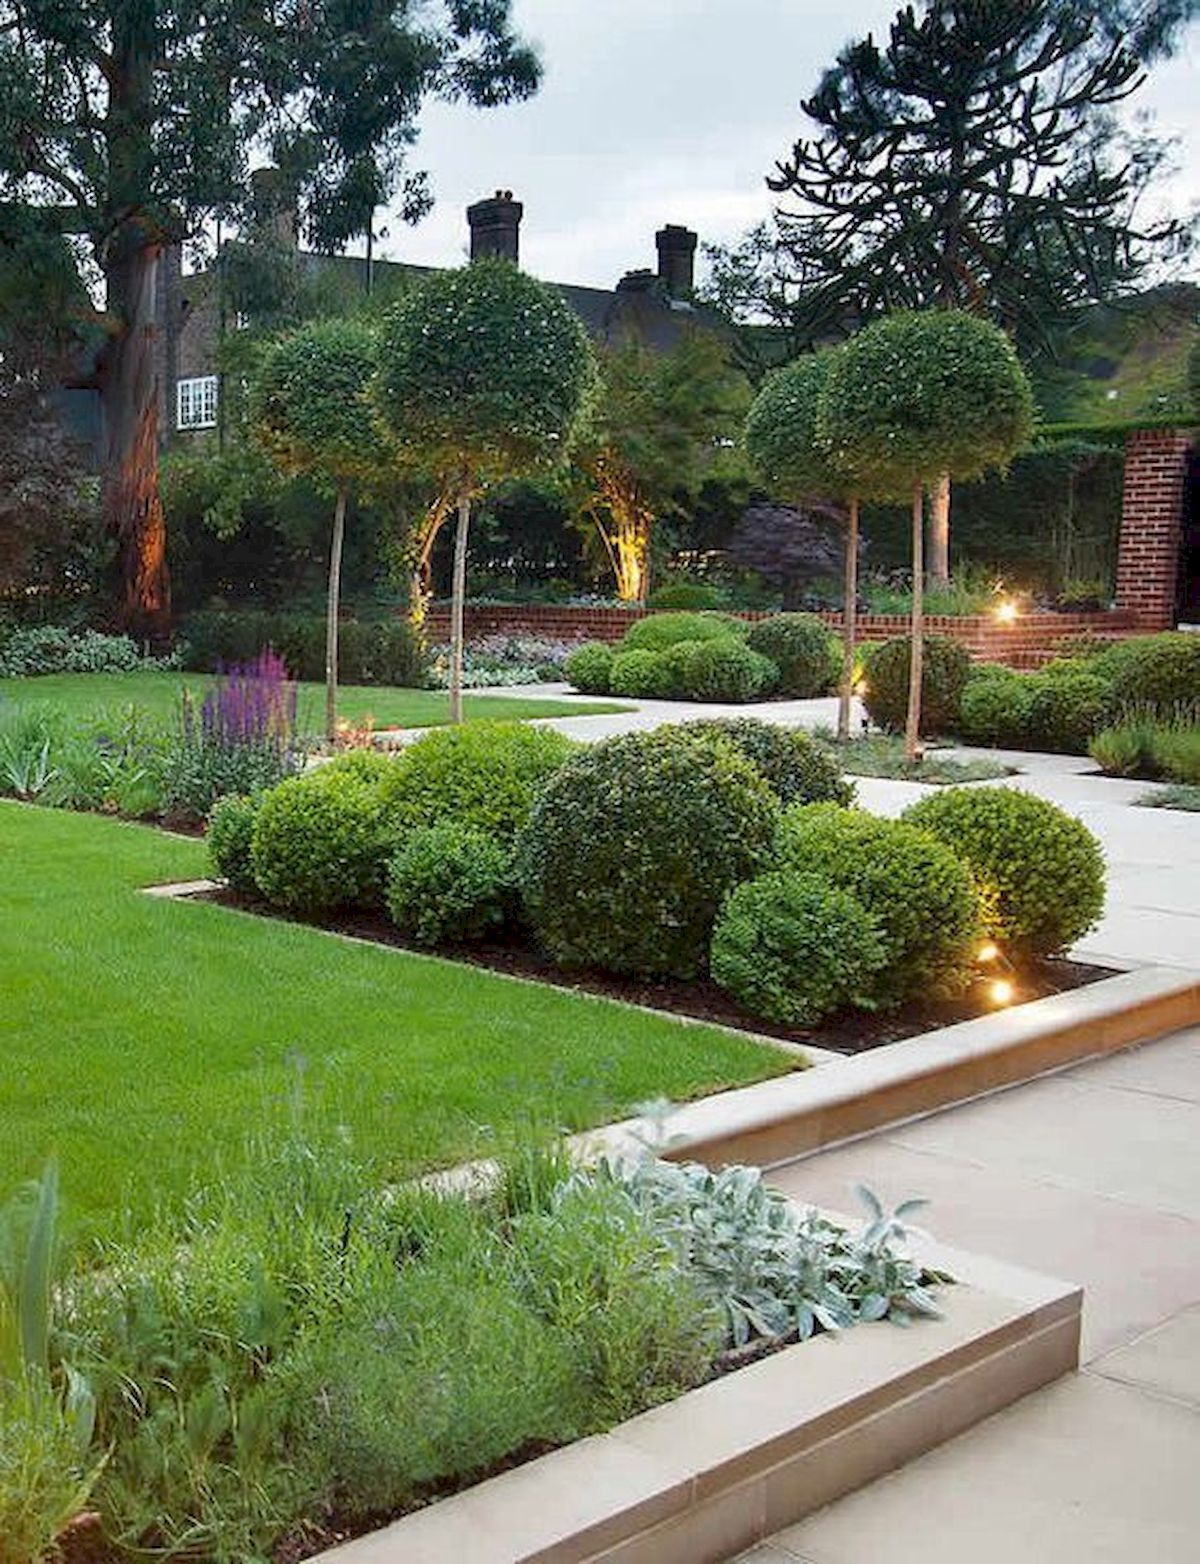 40 Fabulous Modern Garden Designs Ideas For Front Yard and Backyard (31)